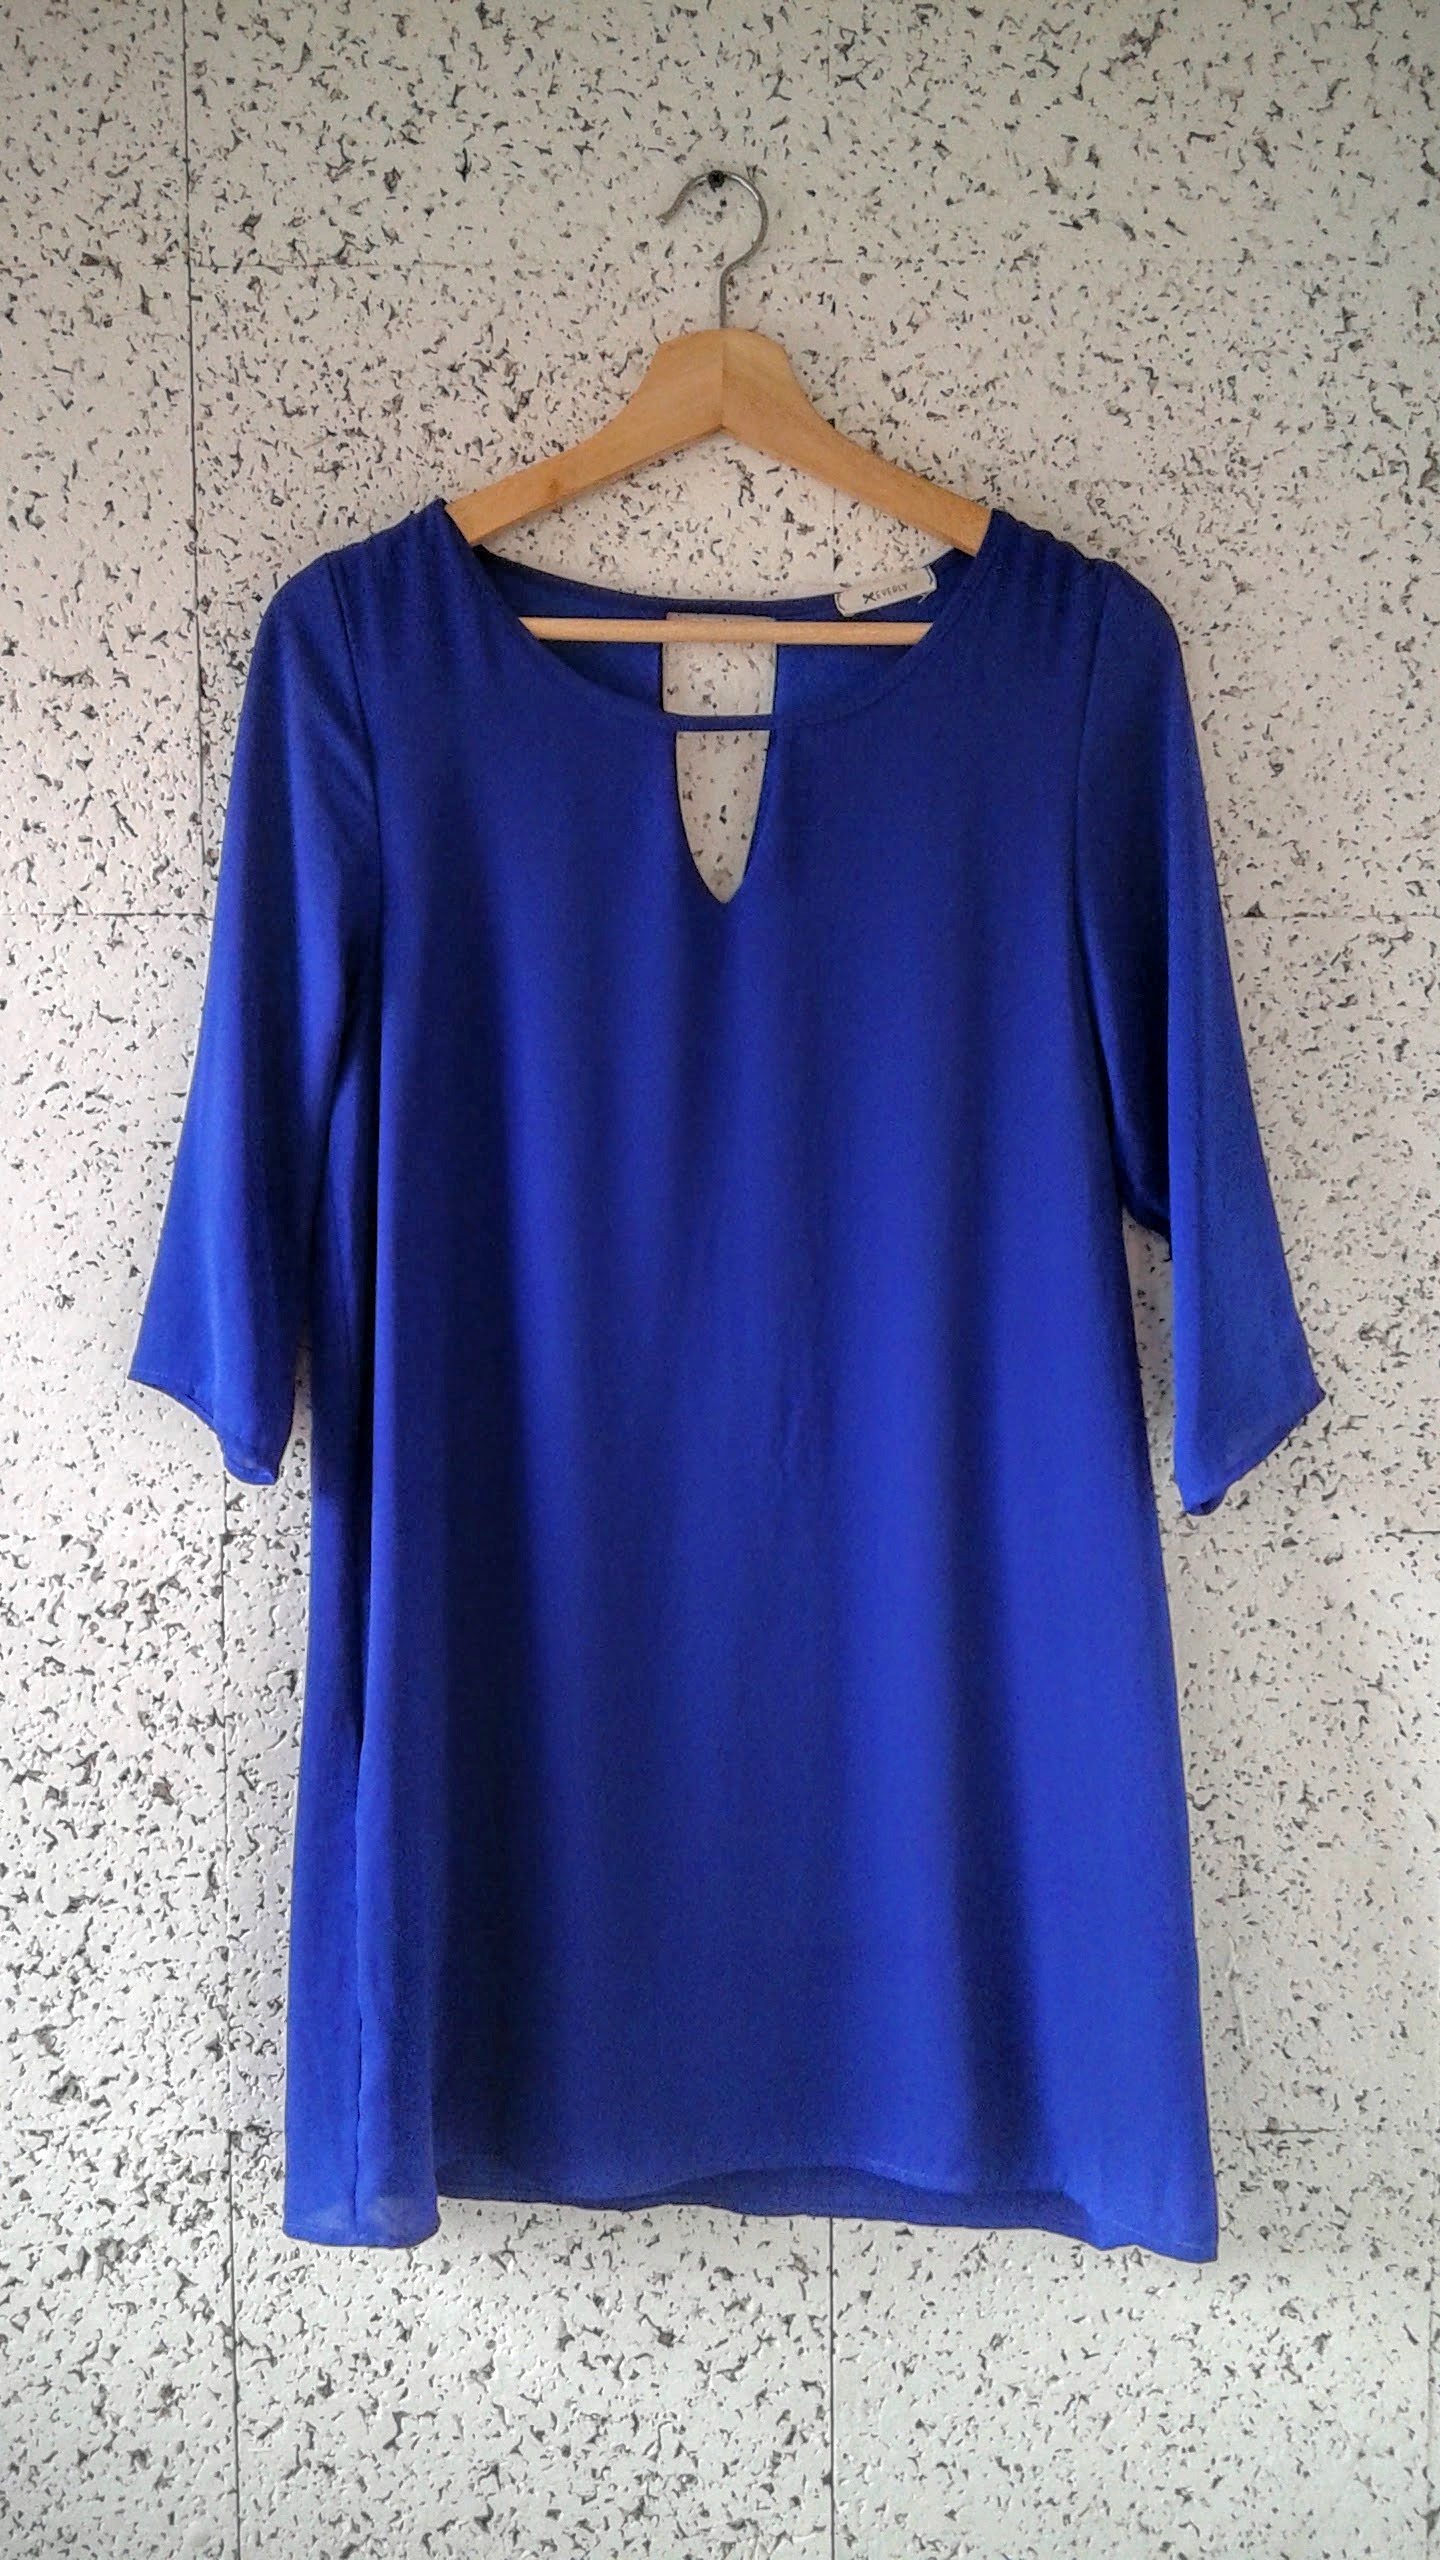 Everly  tunic; Size S, $36